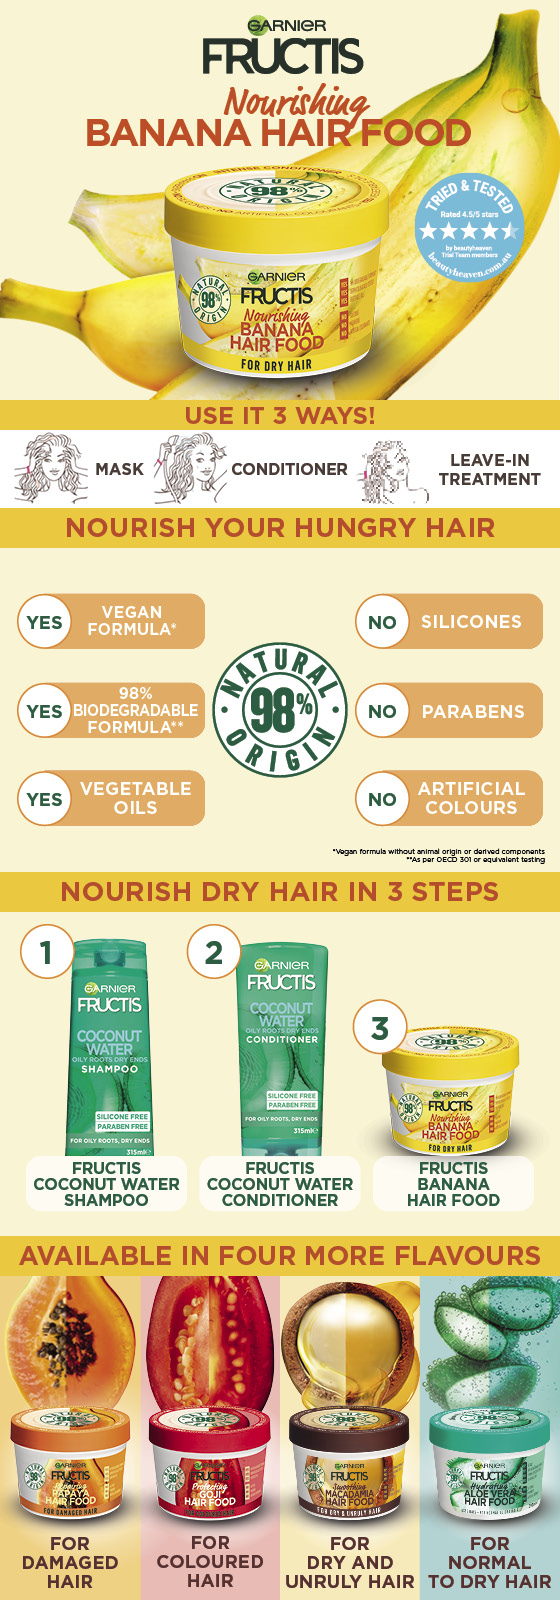 Garnier Fructis Hair Food Nourishing Banana